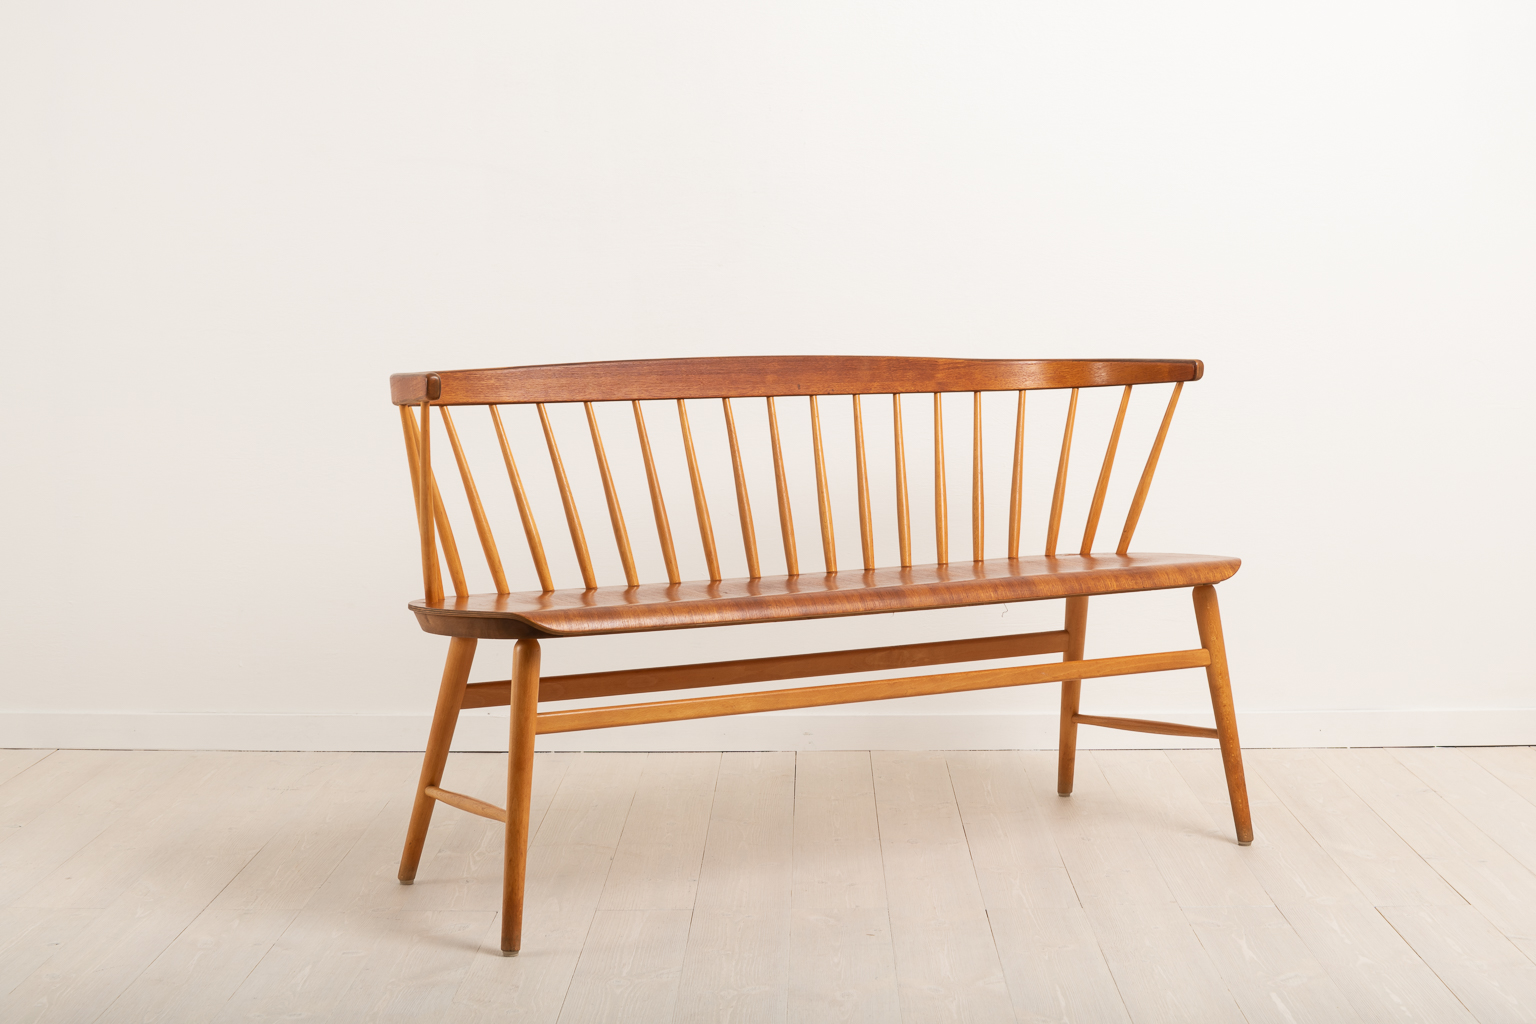 Sofa 'Florett' by Ebbe Wigell. Designed by E. Wignell and manufactured during the 1950s by The Wigell Brothers Chair Factory (Bröderna Wigells Stolfabrik).